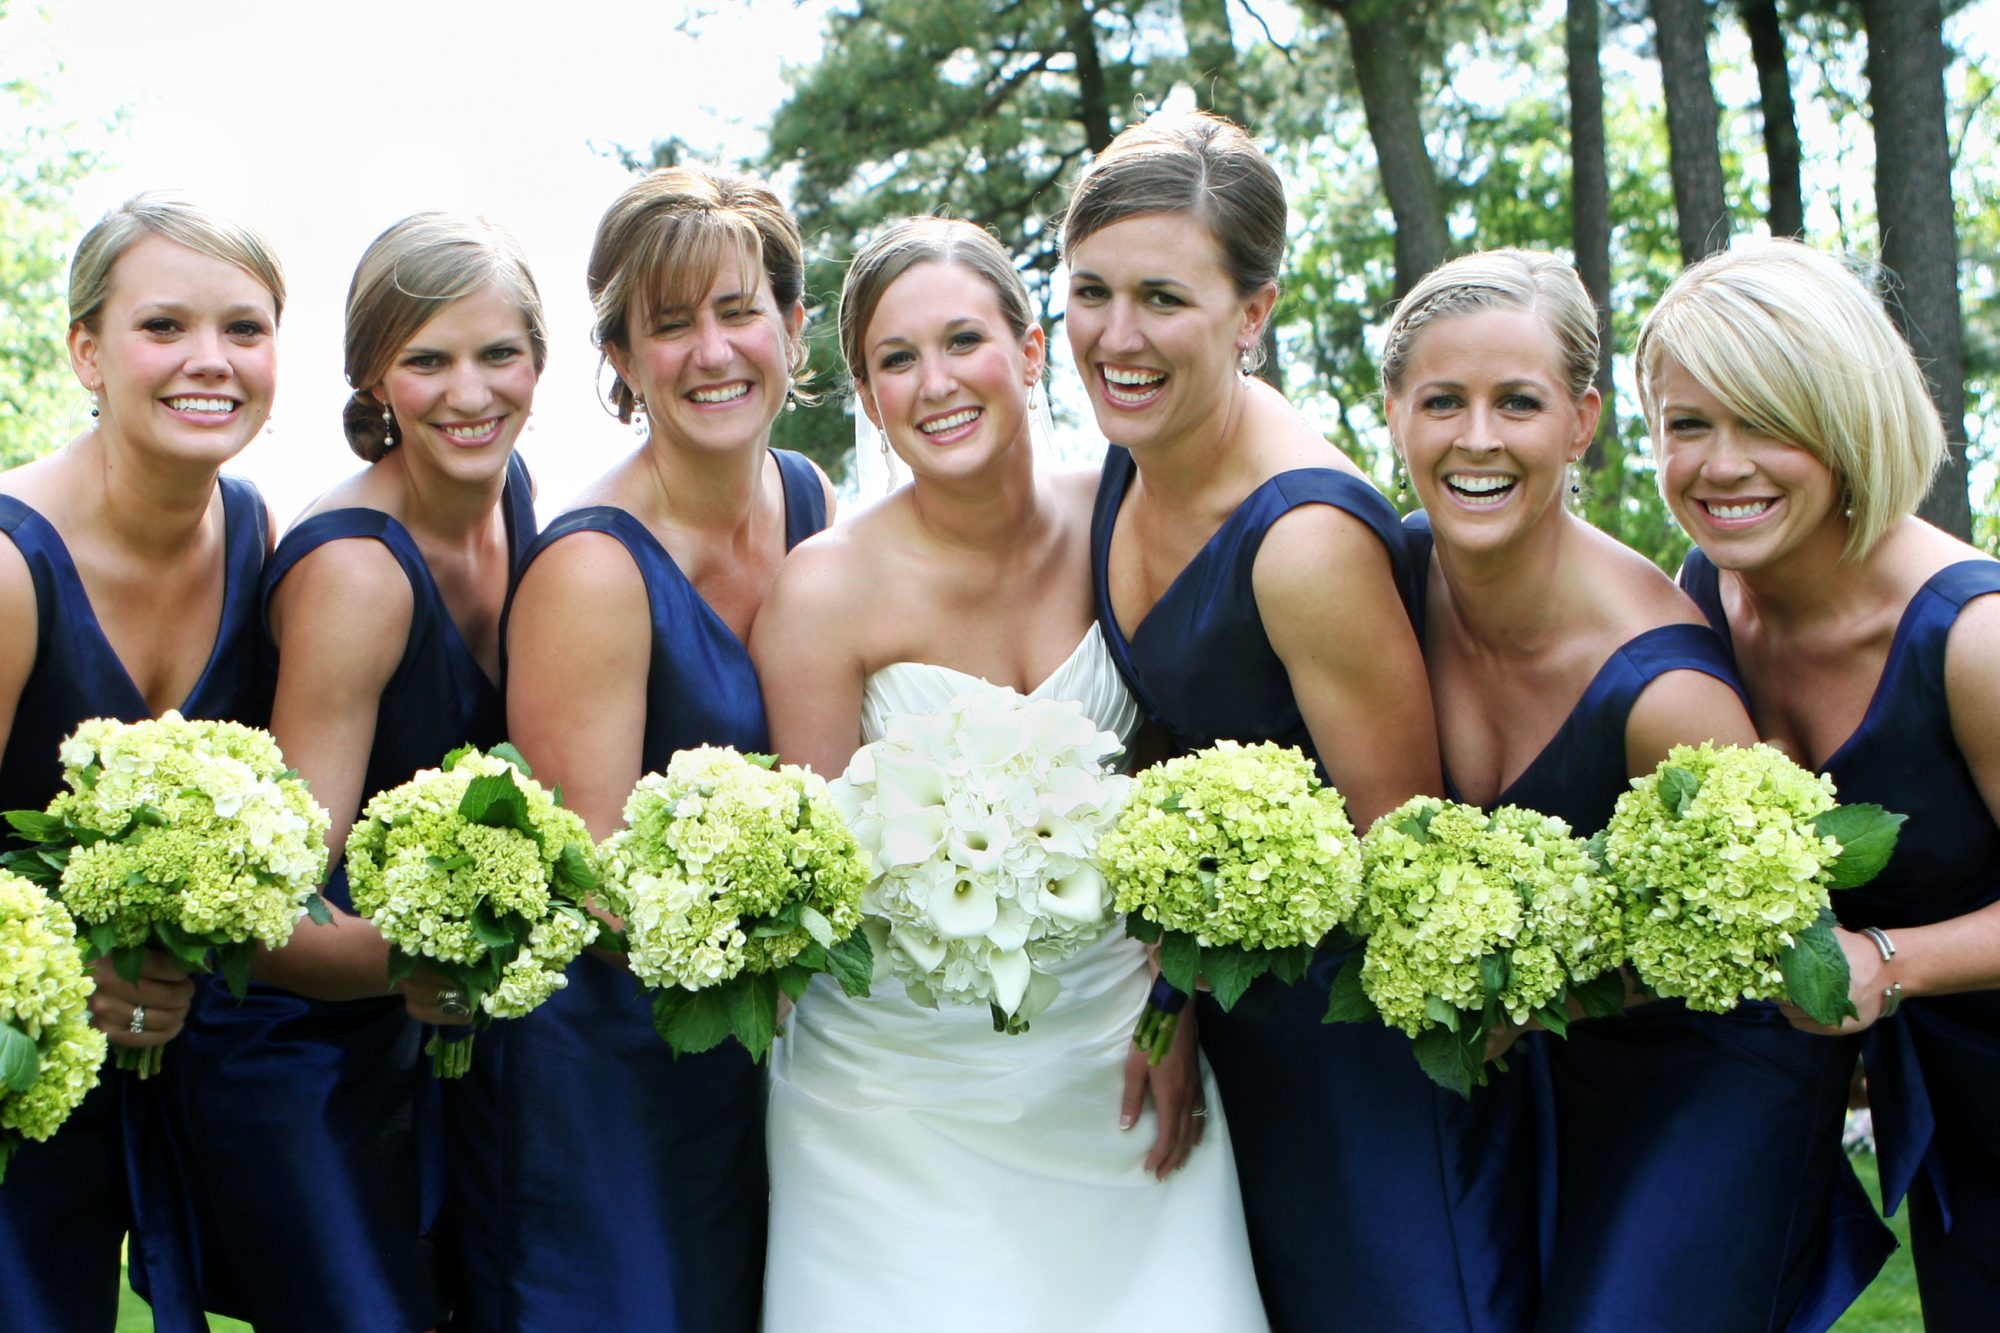 Group of Bridesmaids in Navy